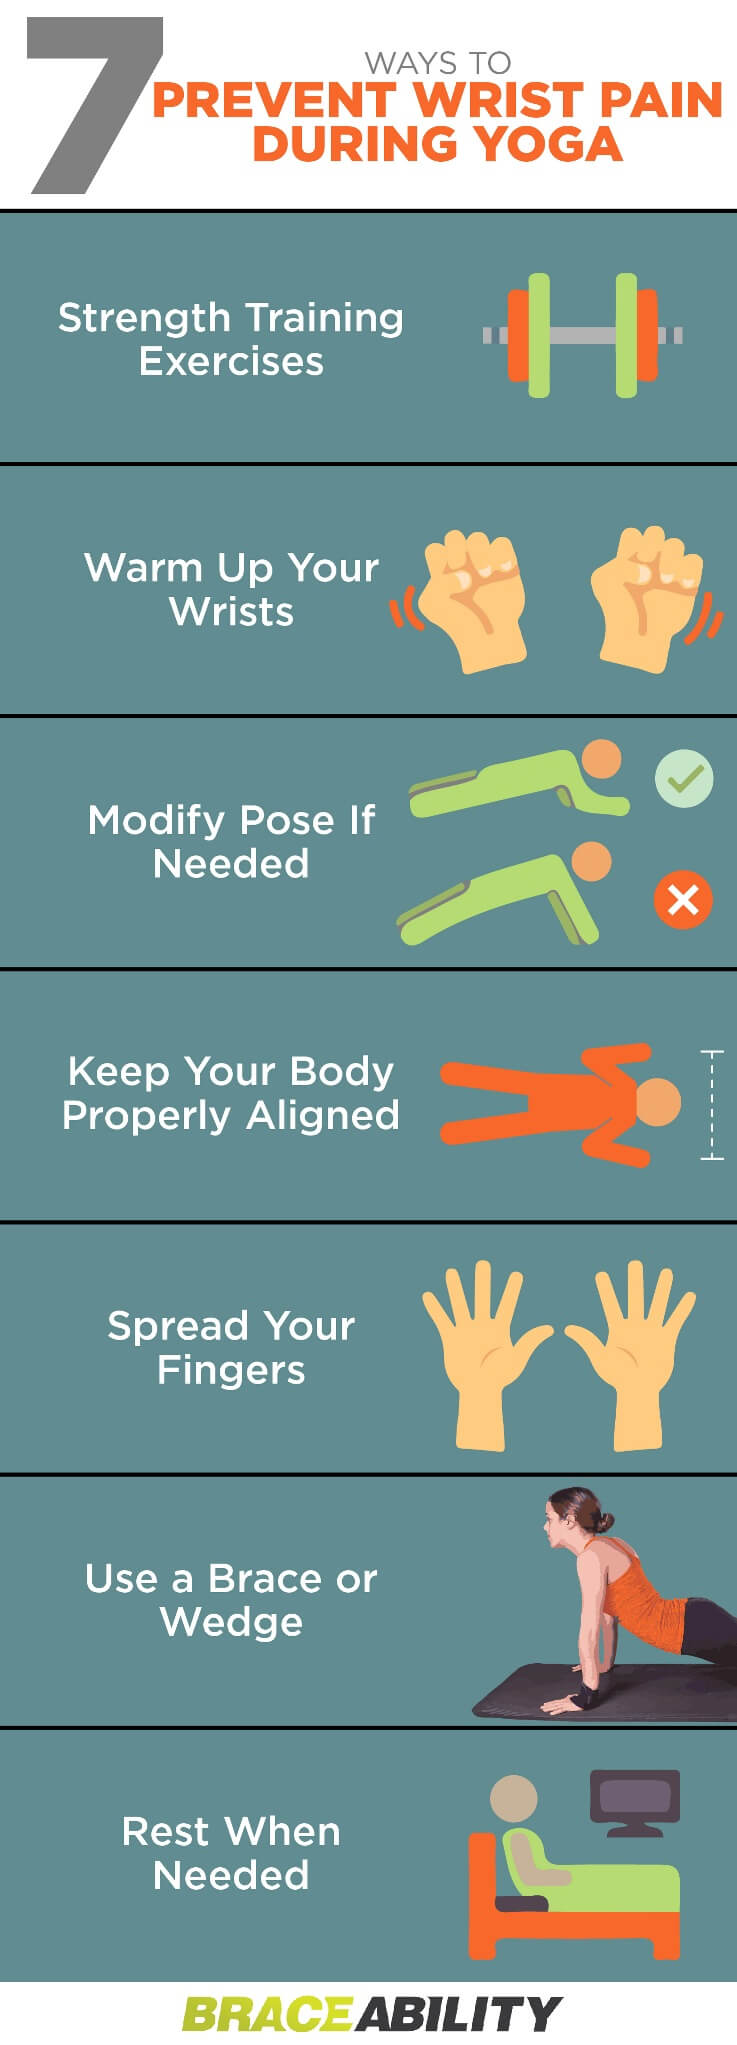 7 Ways To Prevent Wrist Pain During Yoga